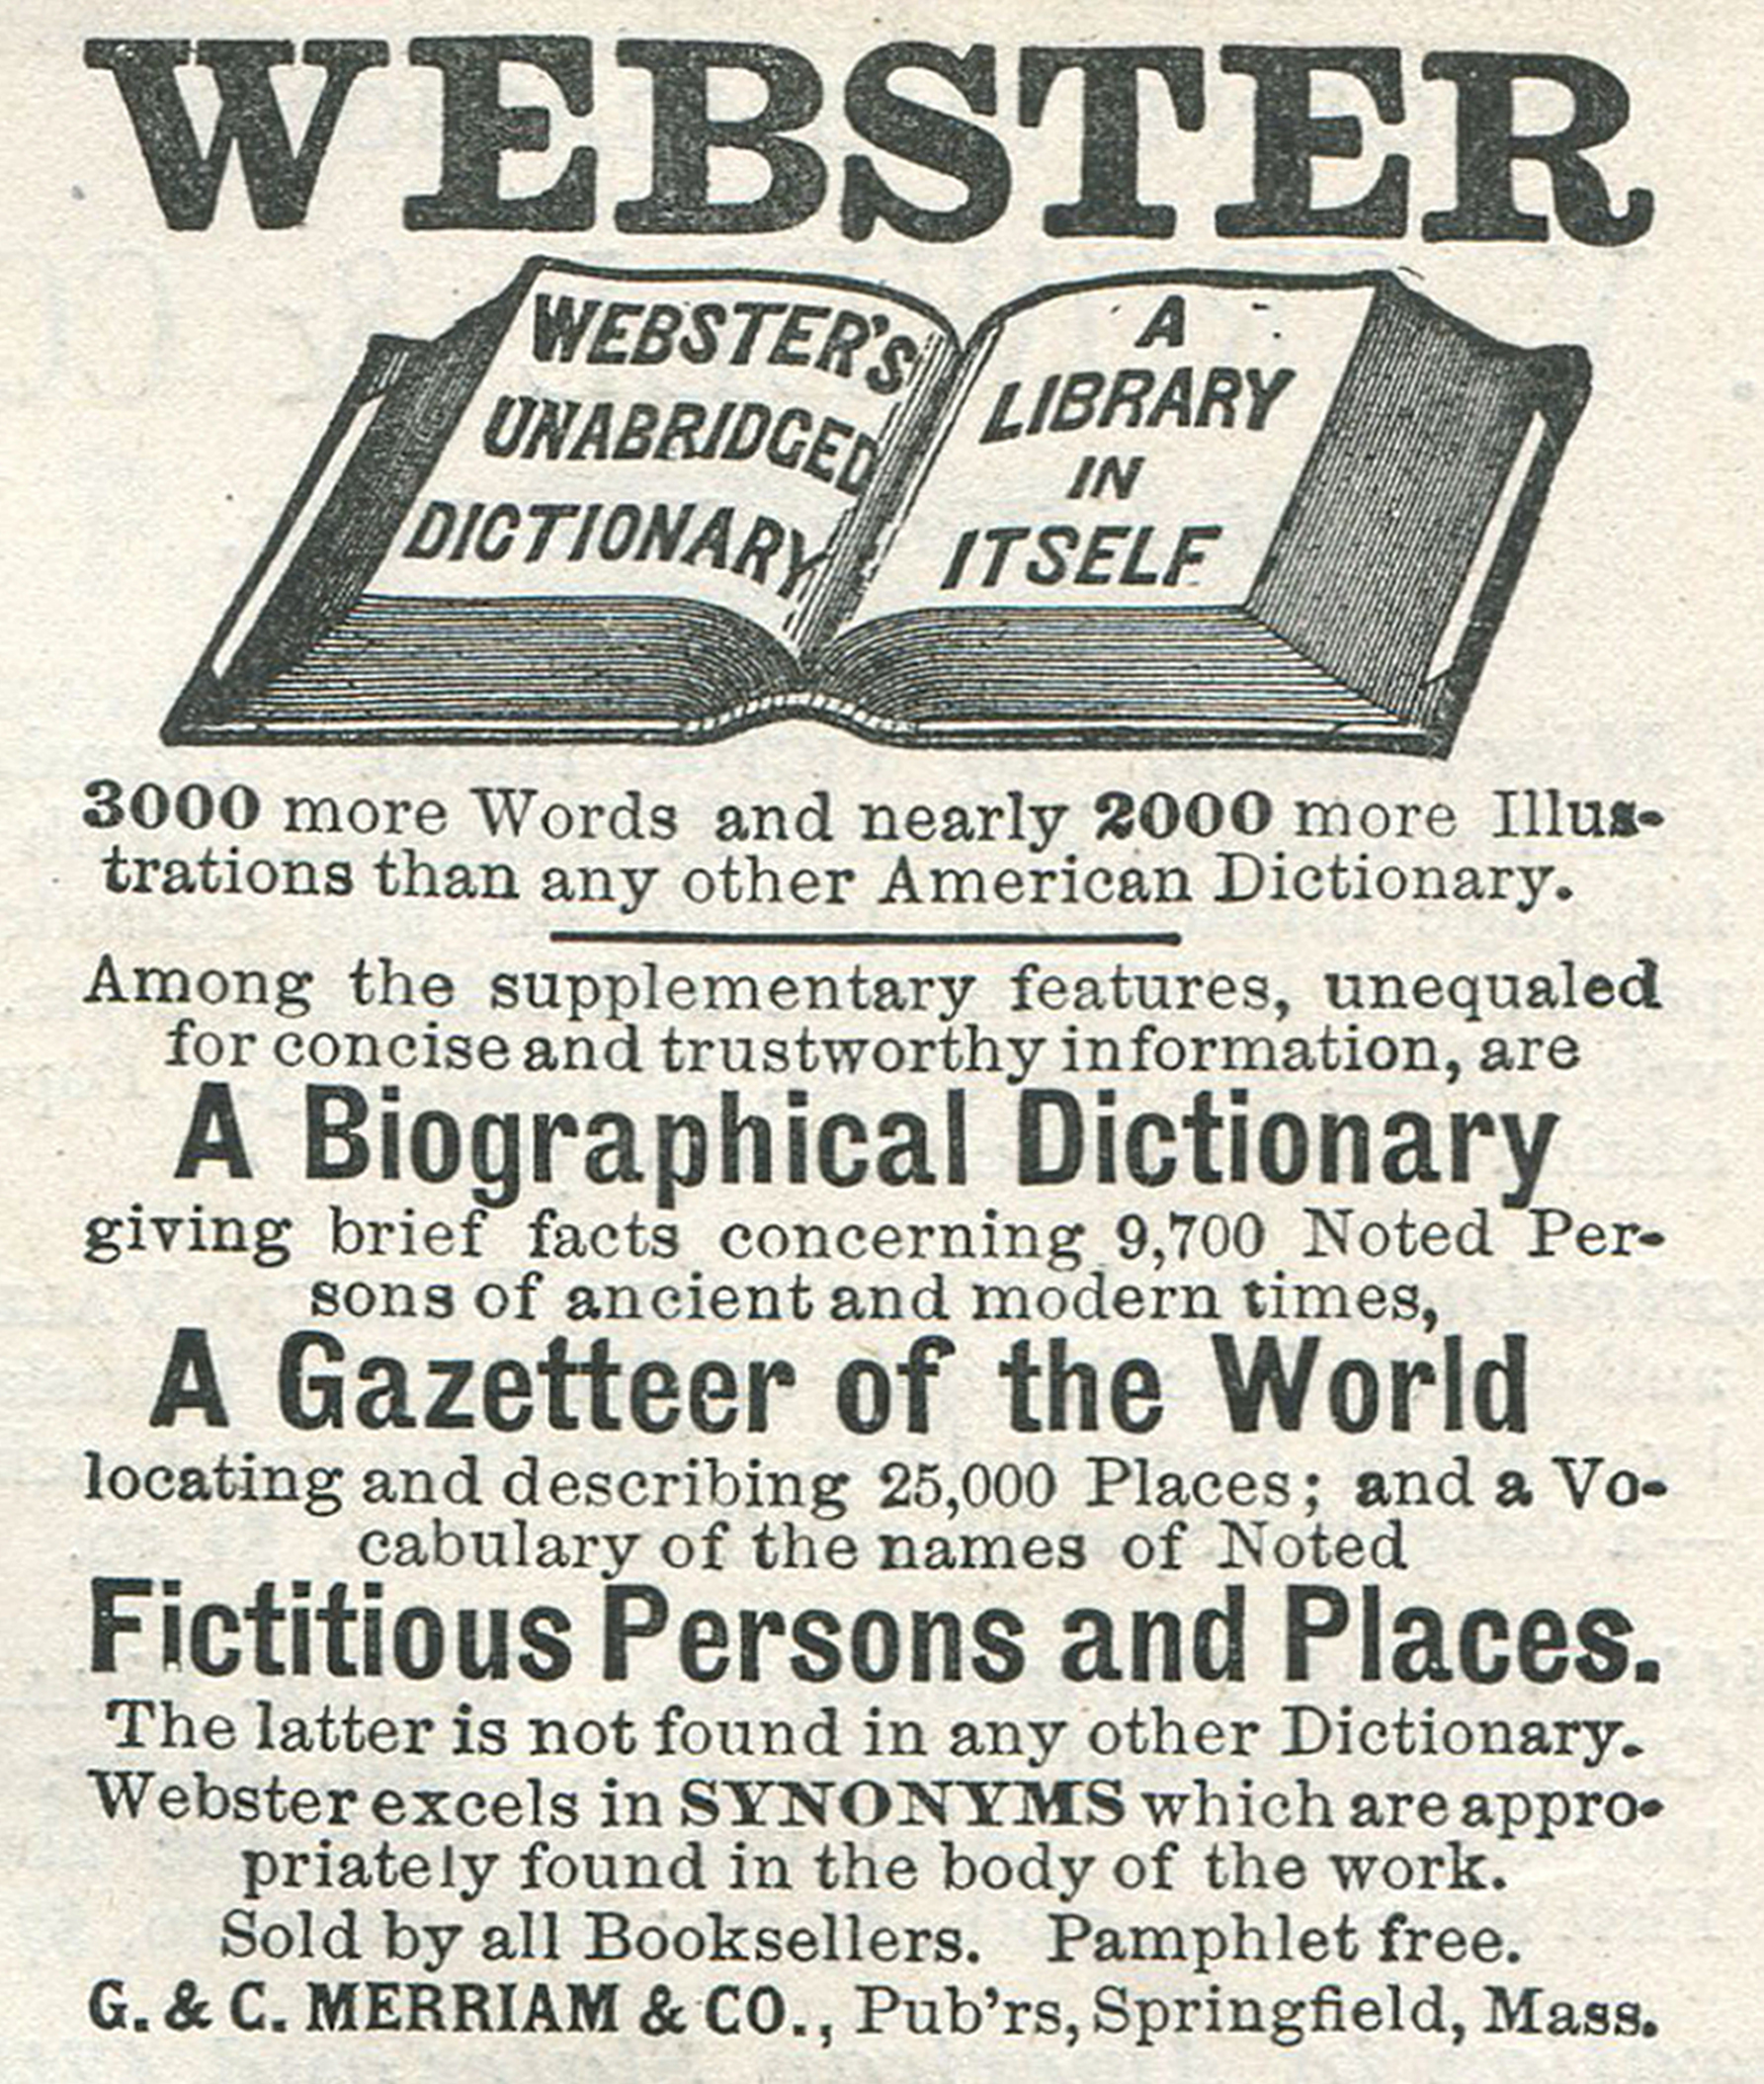 Advertisement for Webster's Dictionary published by the G and C Merriam and Company, Springfield, Massachusetts, 1888.